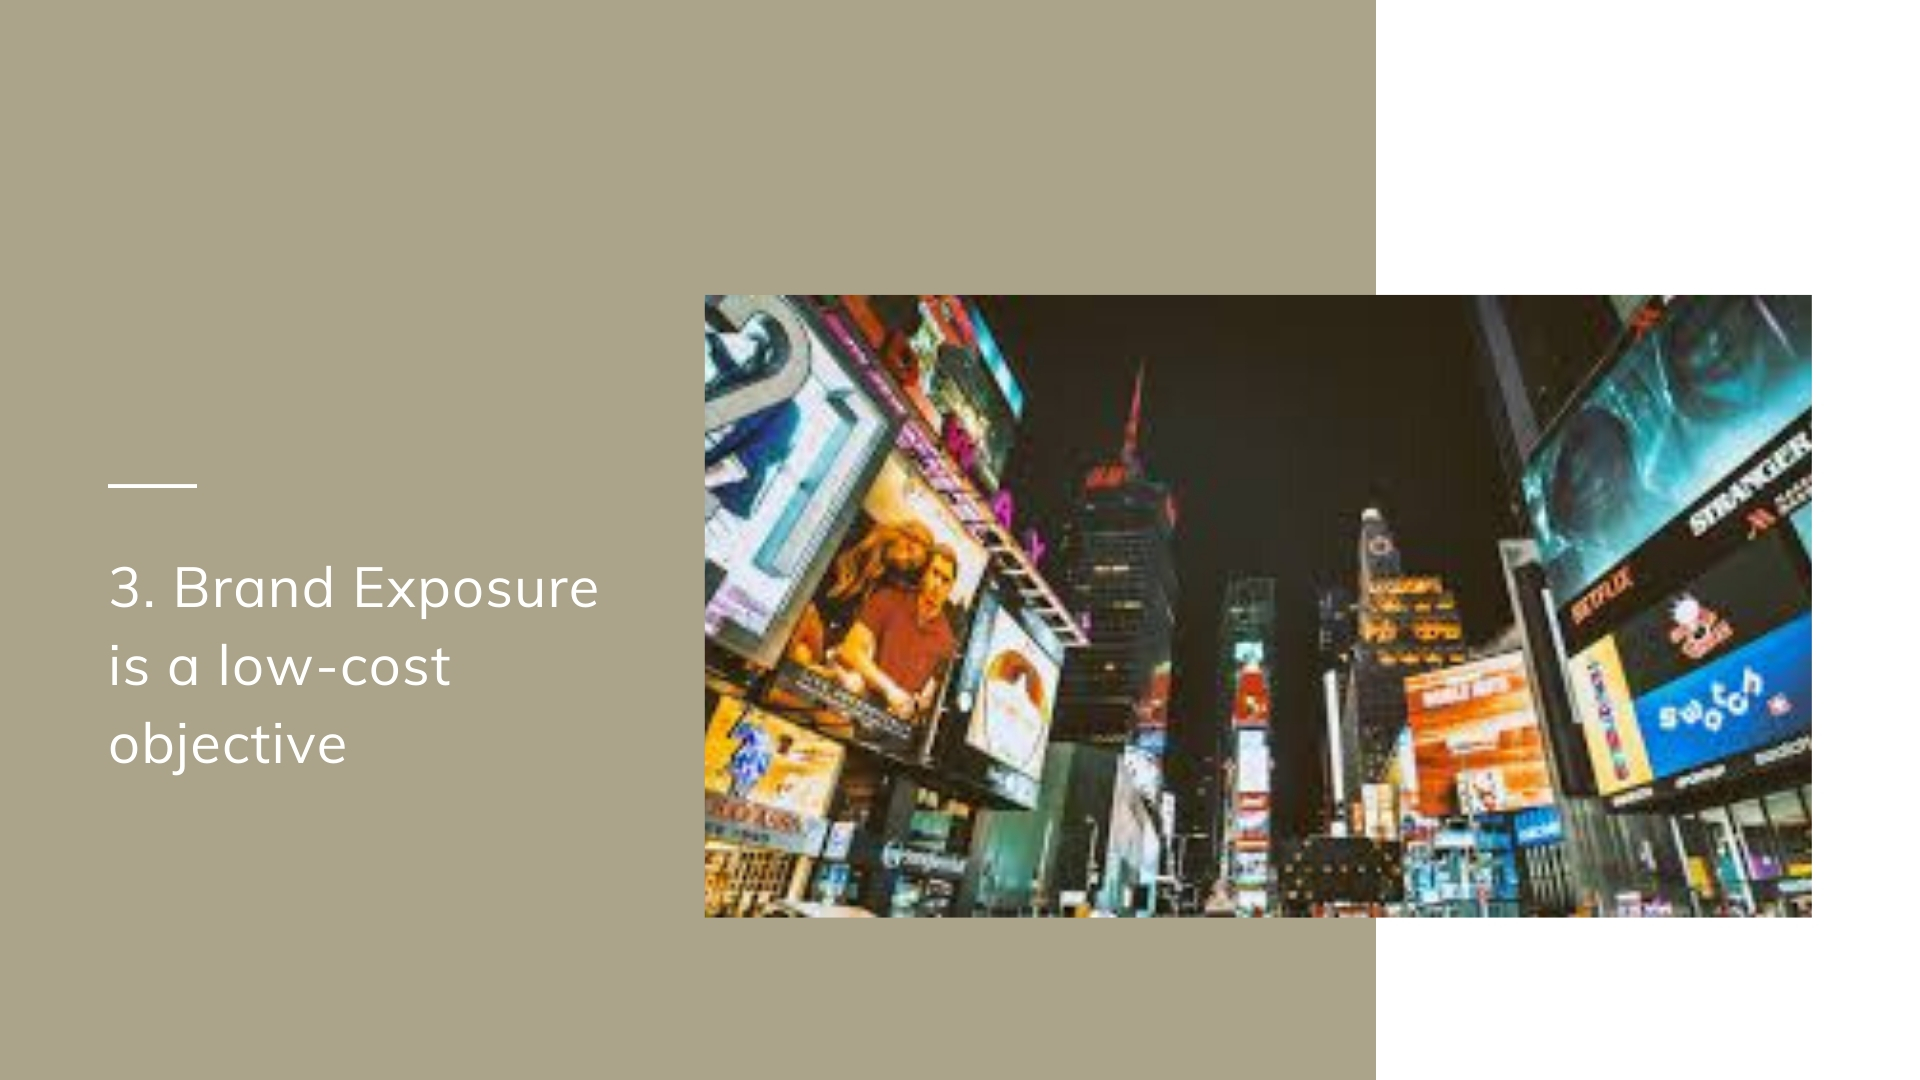 3. Brand Exposure is a low-cost objective